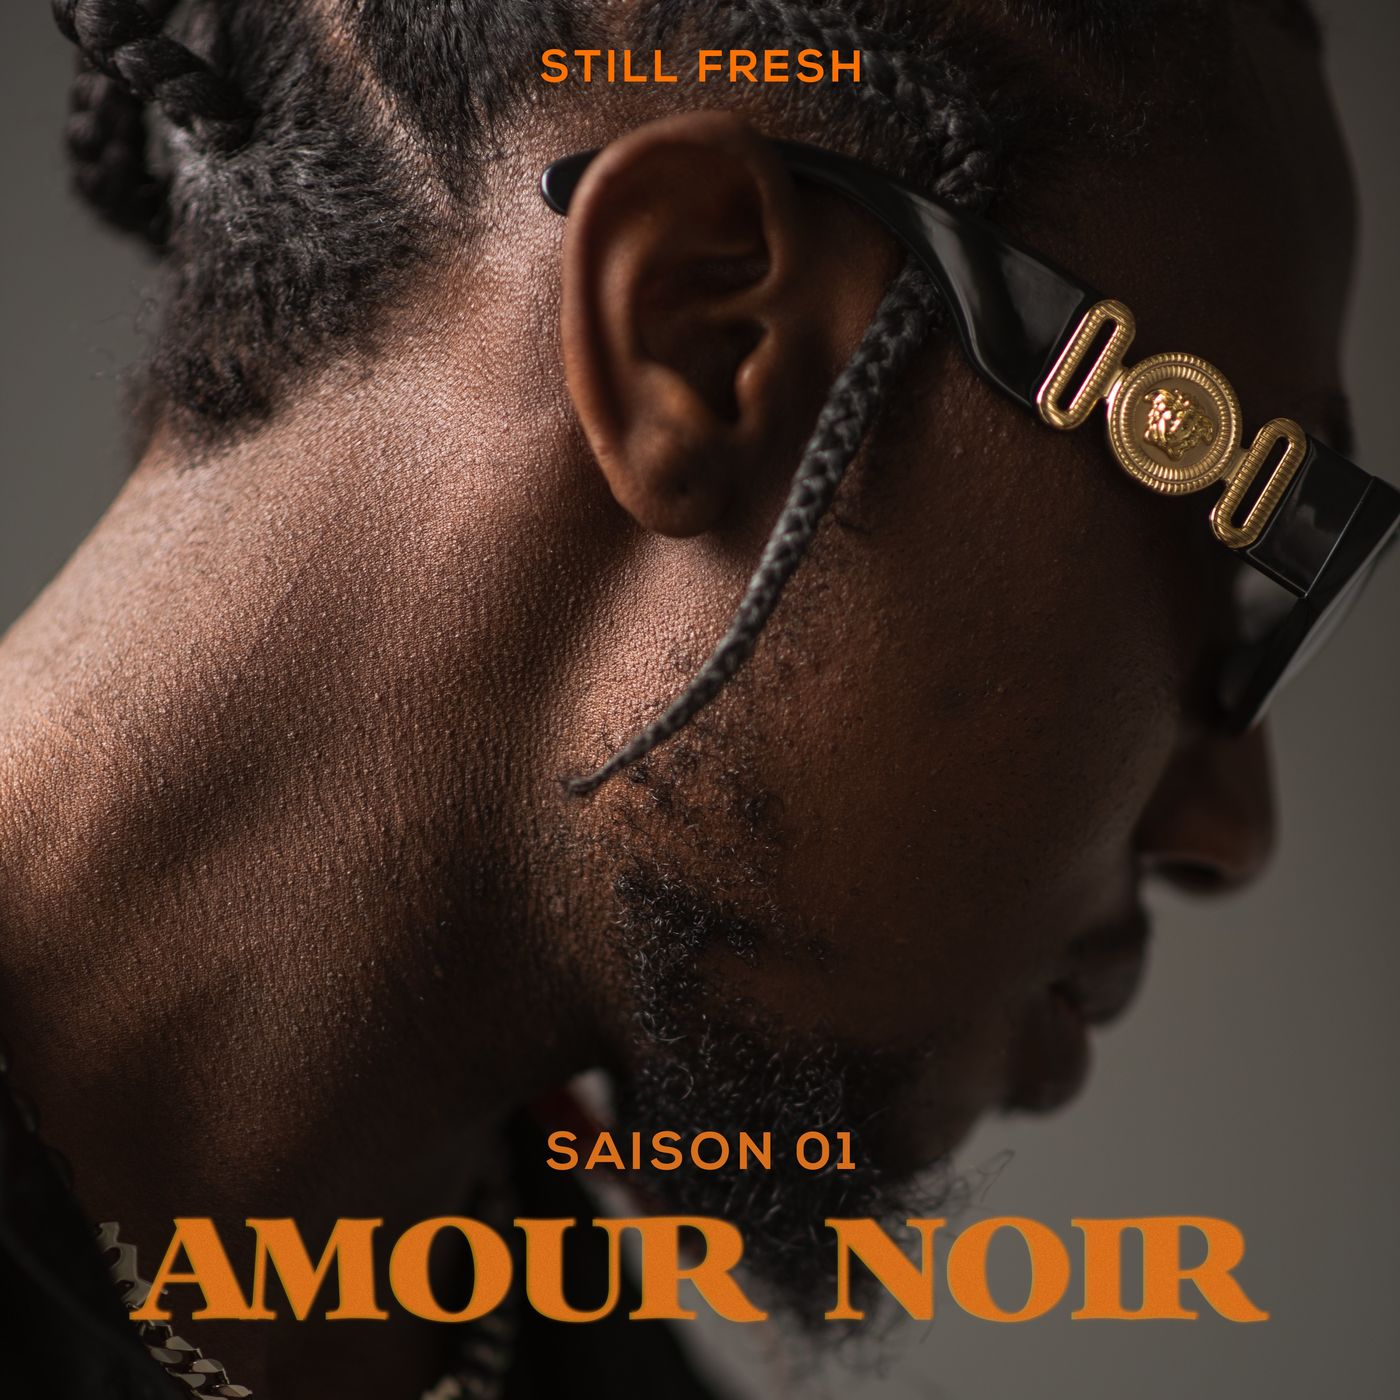 Cover album AMOUR NOIR (SAISON 01) (Explicit)